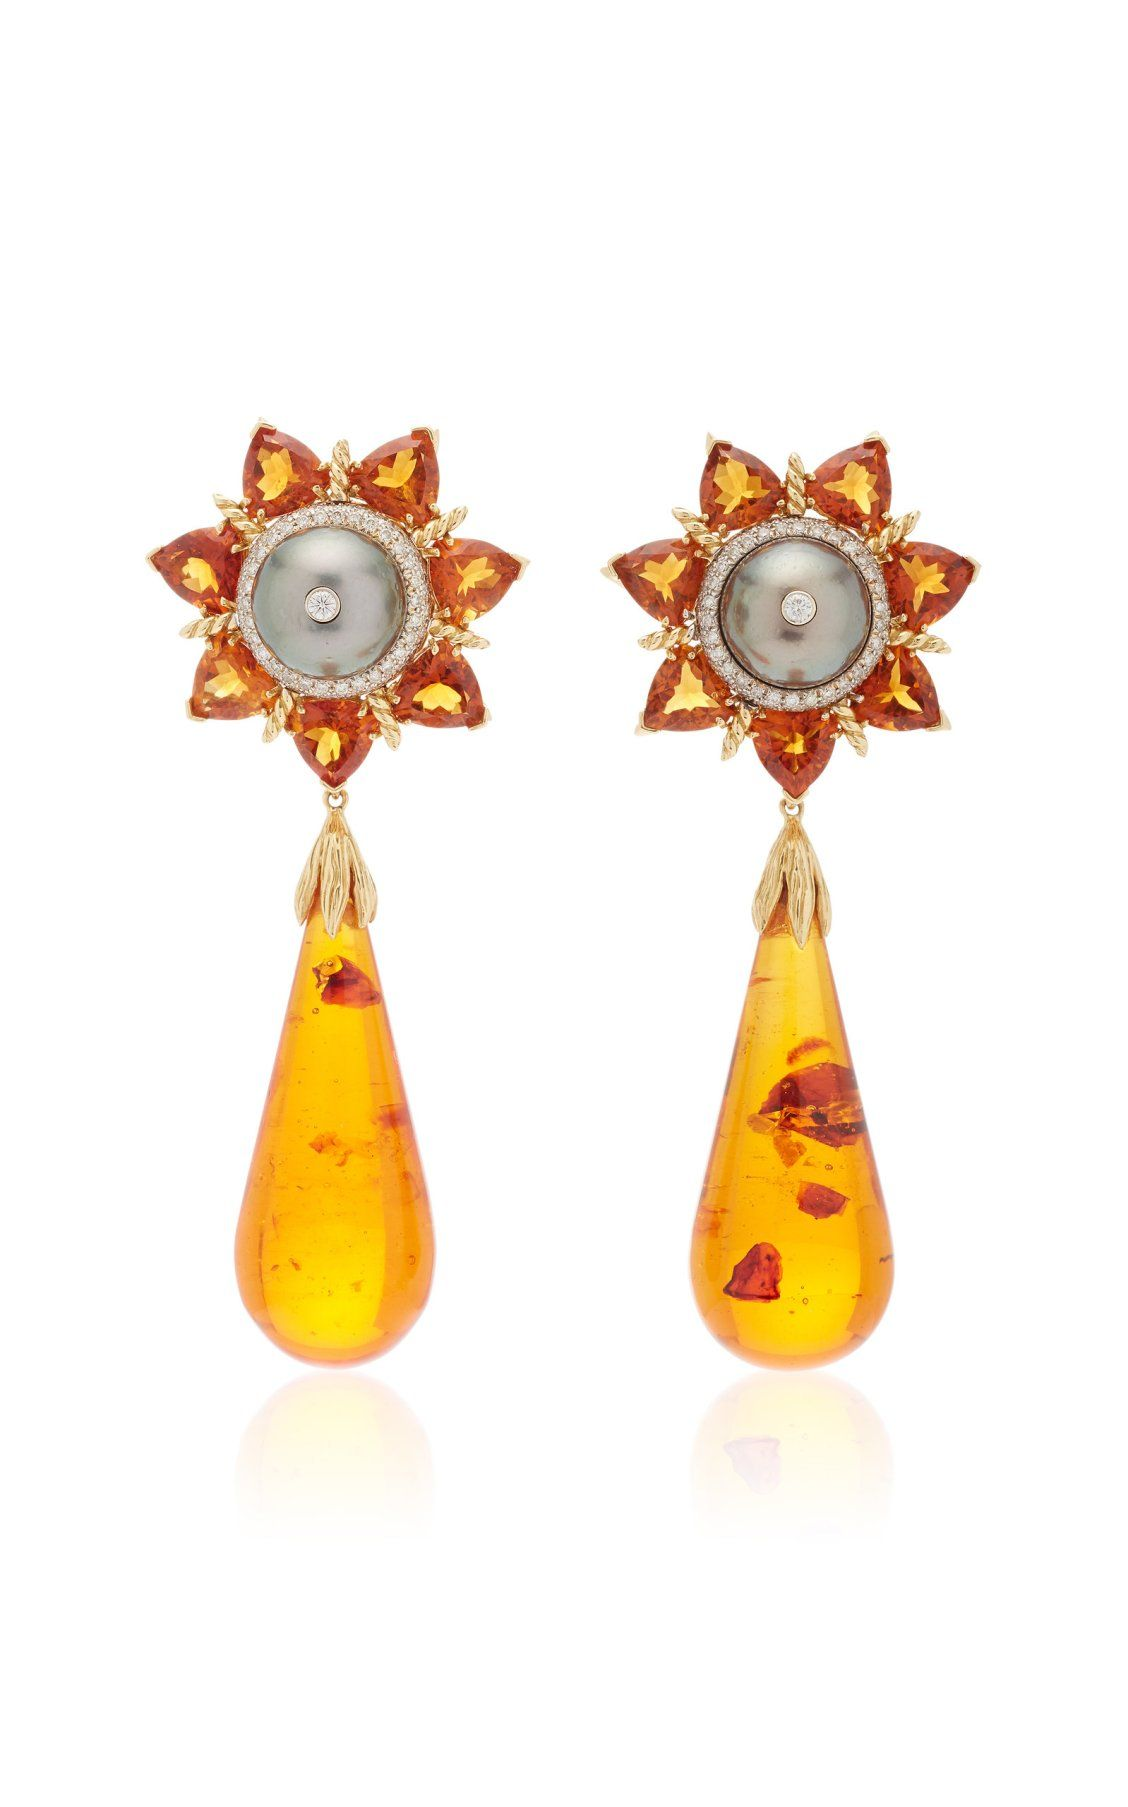 Tony Duquette One Of A Kind 18k Yellow Gold Amber Citrine Diamond And Black Pearl Earrings Black Pearl Earrings Black Pearl Citrine